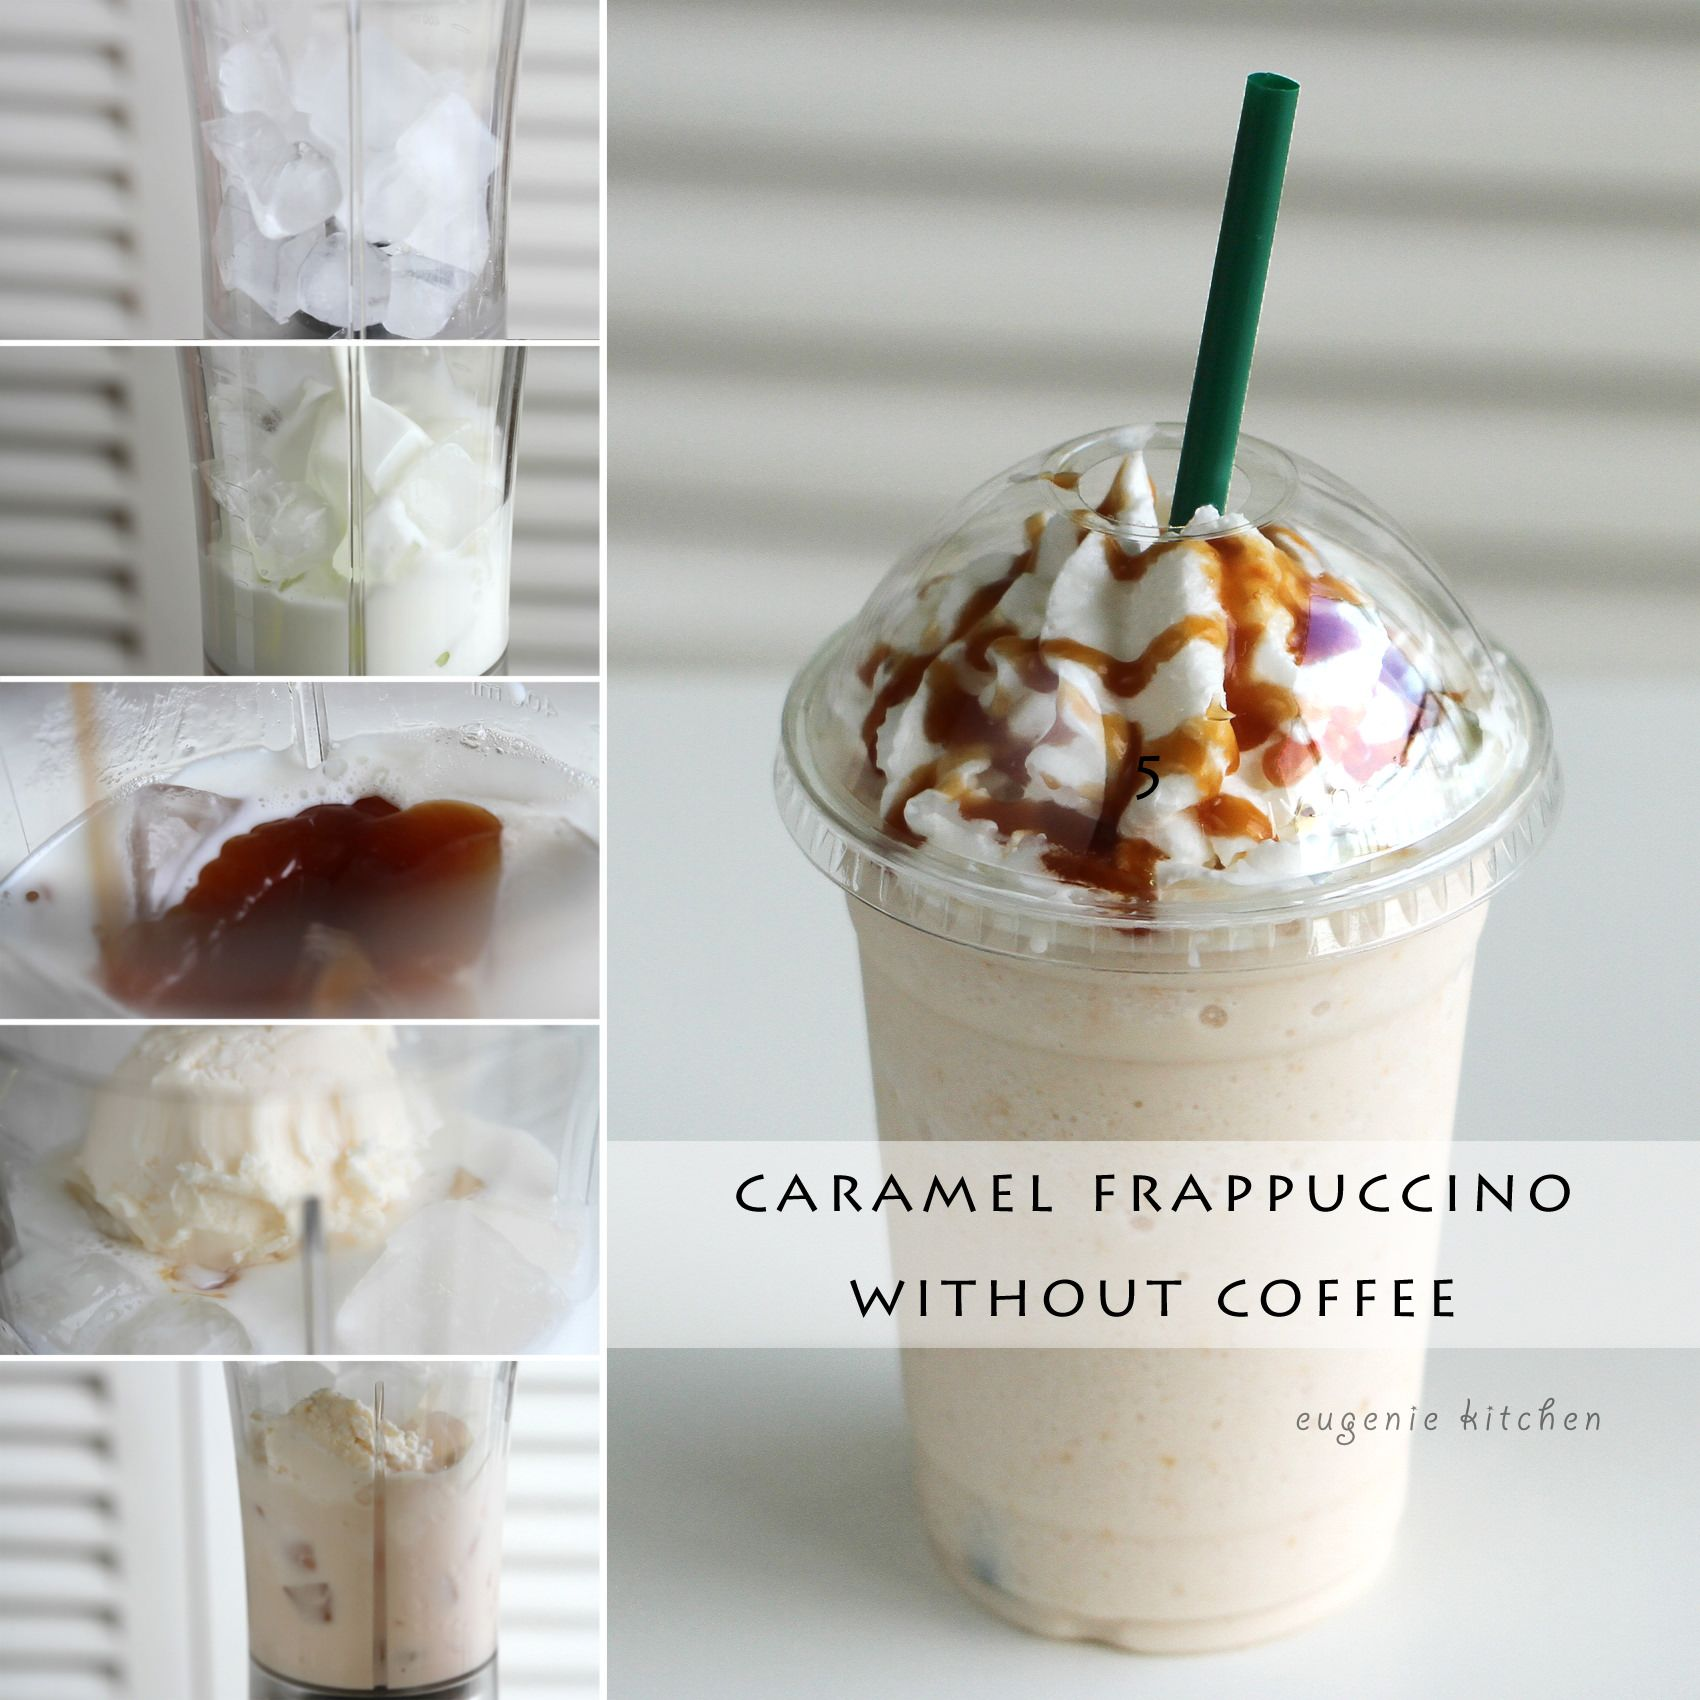 Caramel Fappuccino Without Coffee Recipe Starbucks Recipes Starbucks Drinks Recipes Caramel Frappuccino